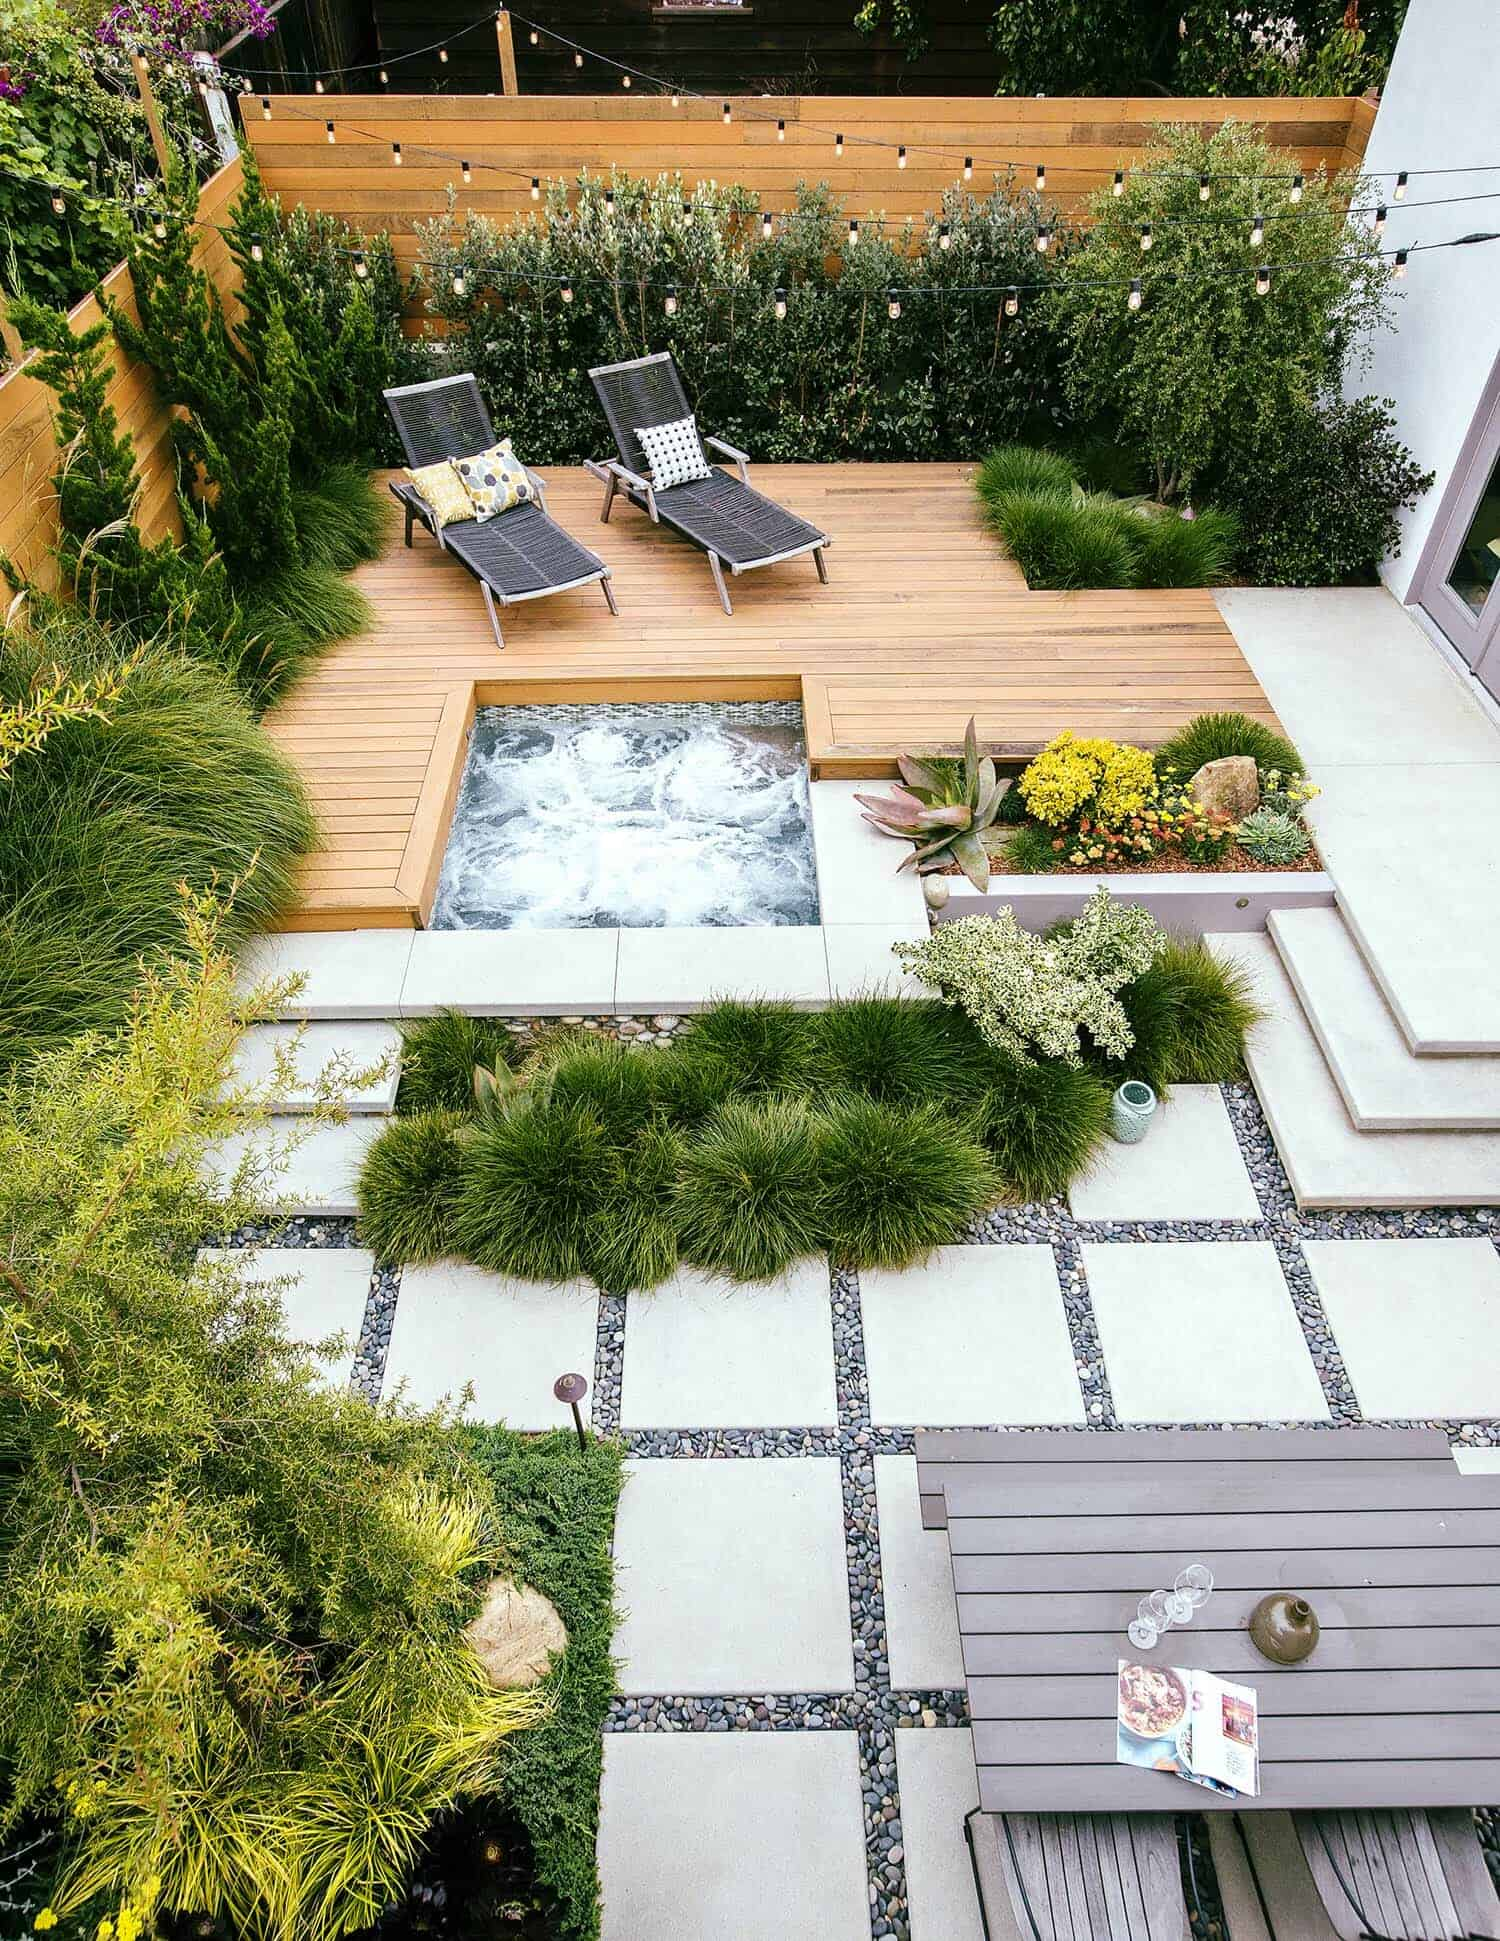 35 Brilliant and inspiring patio ideas for outdoor living ... on Garden Entertainment Area Ideas id=87332